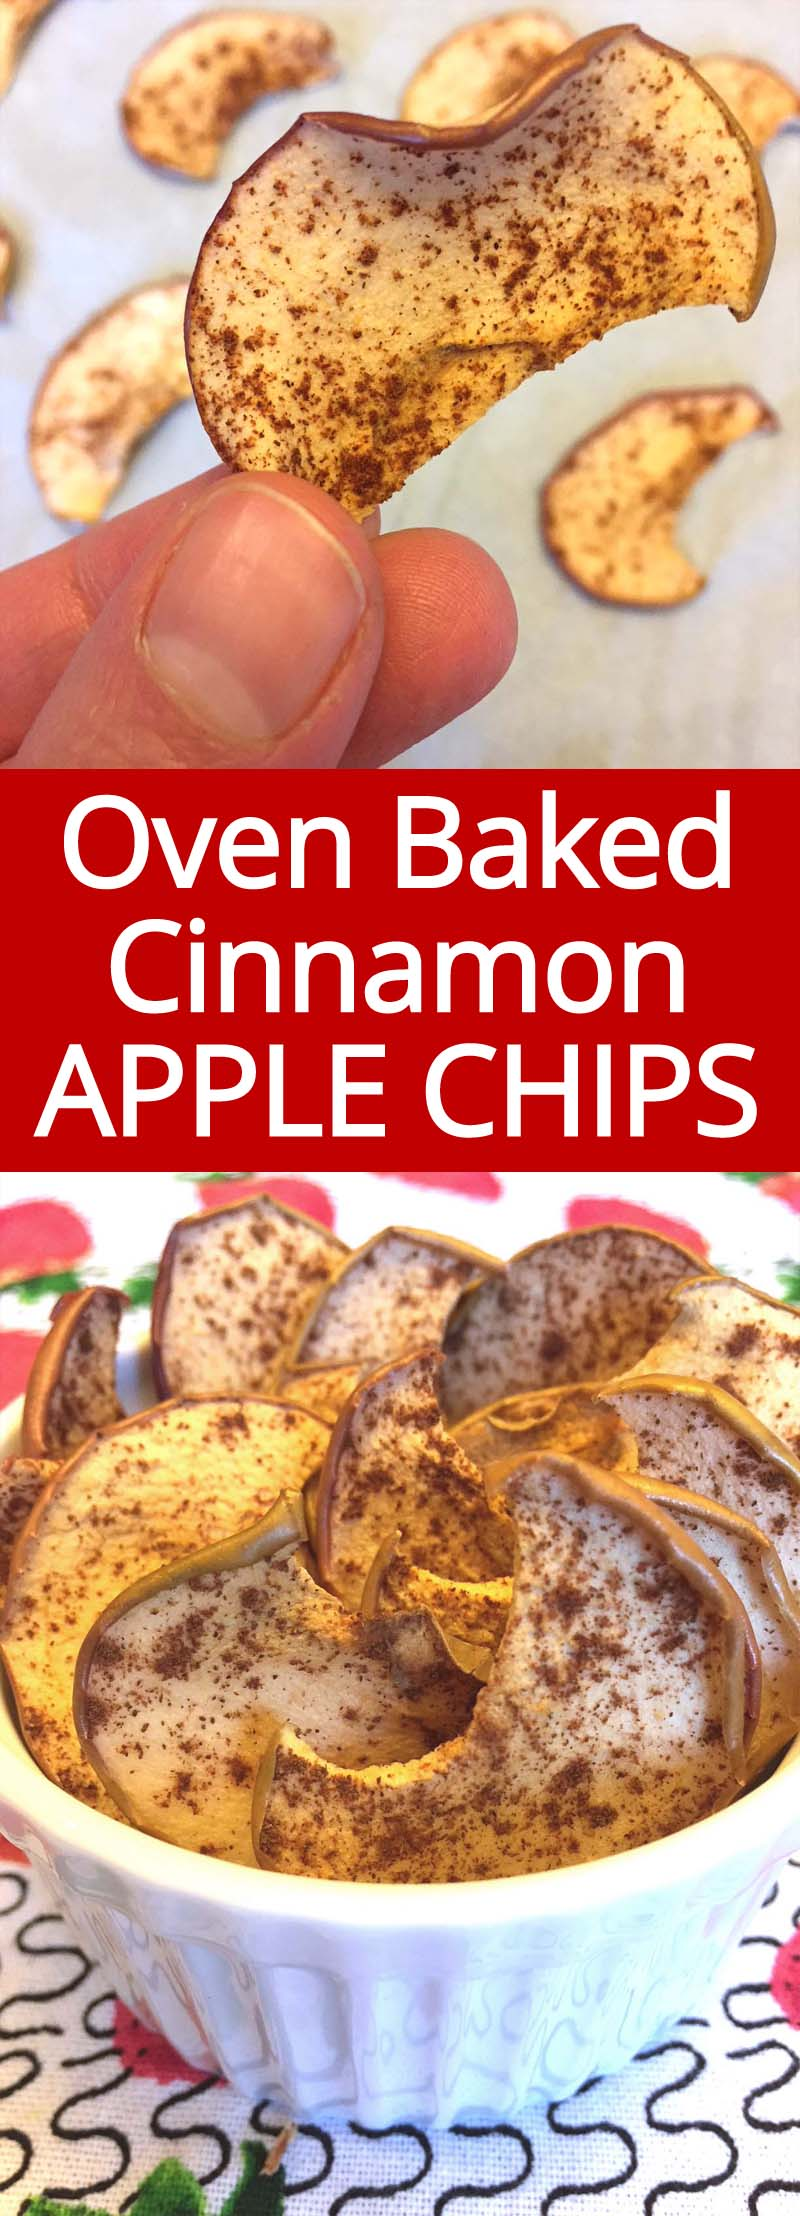 I love these homemade cinnamon apple chips! SO HEALTHY AND YUMMY! So easy to make in the oven! Perfect healthy snack!!!